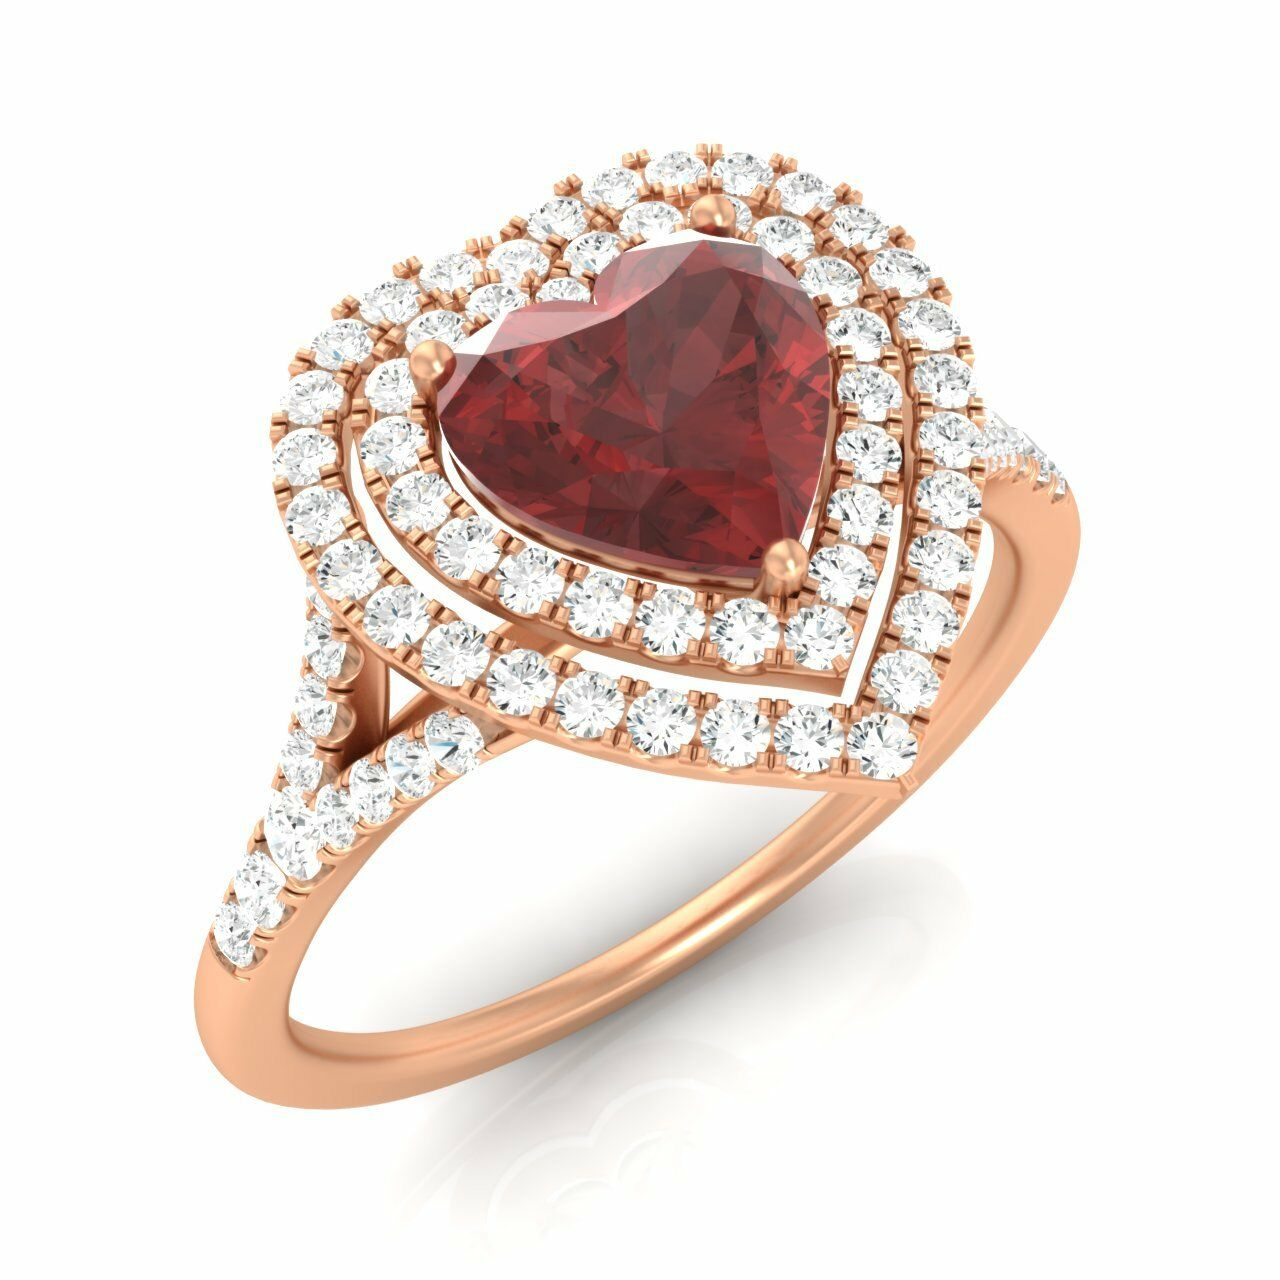 1.48 CT SOLID 14K pink gold STUNNING HEART-CUT NATURAL GARNET & SI DIAMOND RING